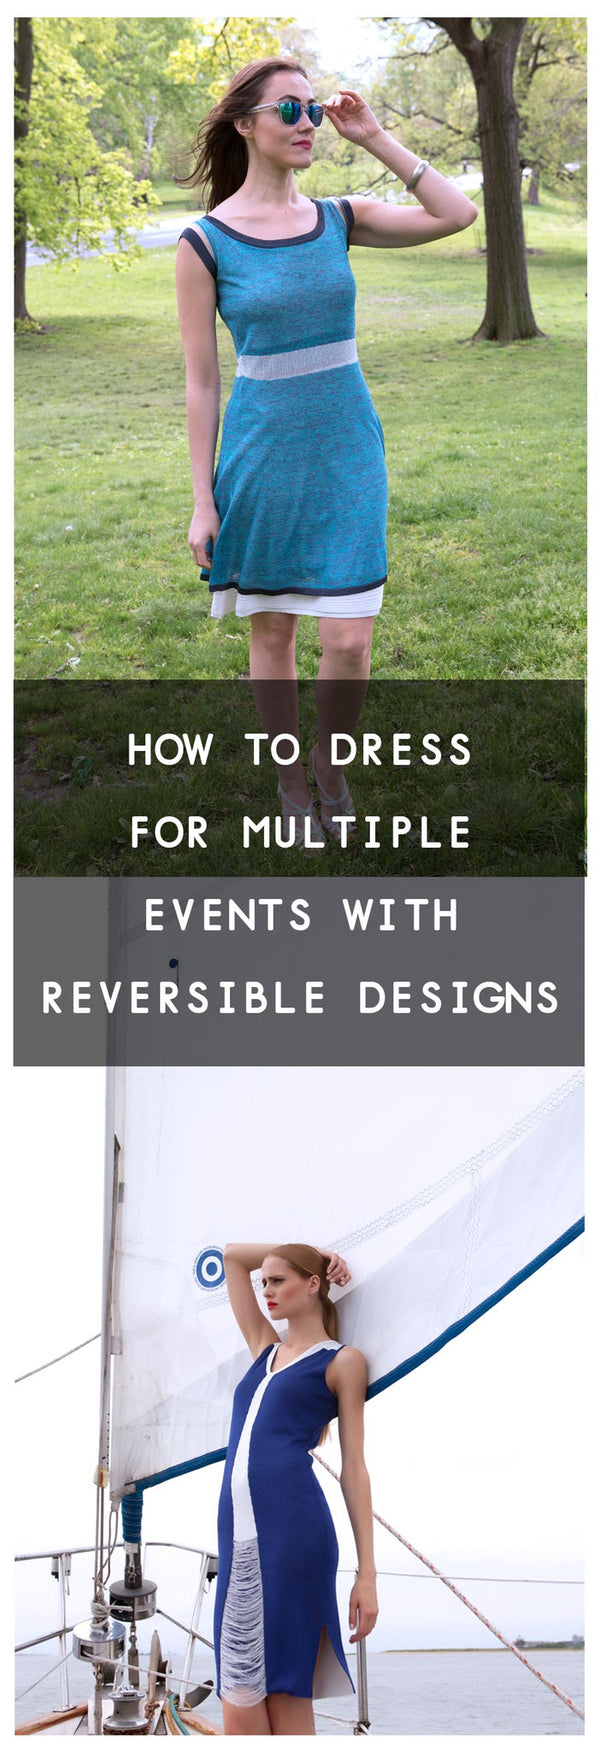 How to Dress for Multiple Events with Reversible Designs